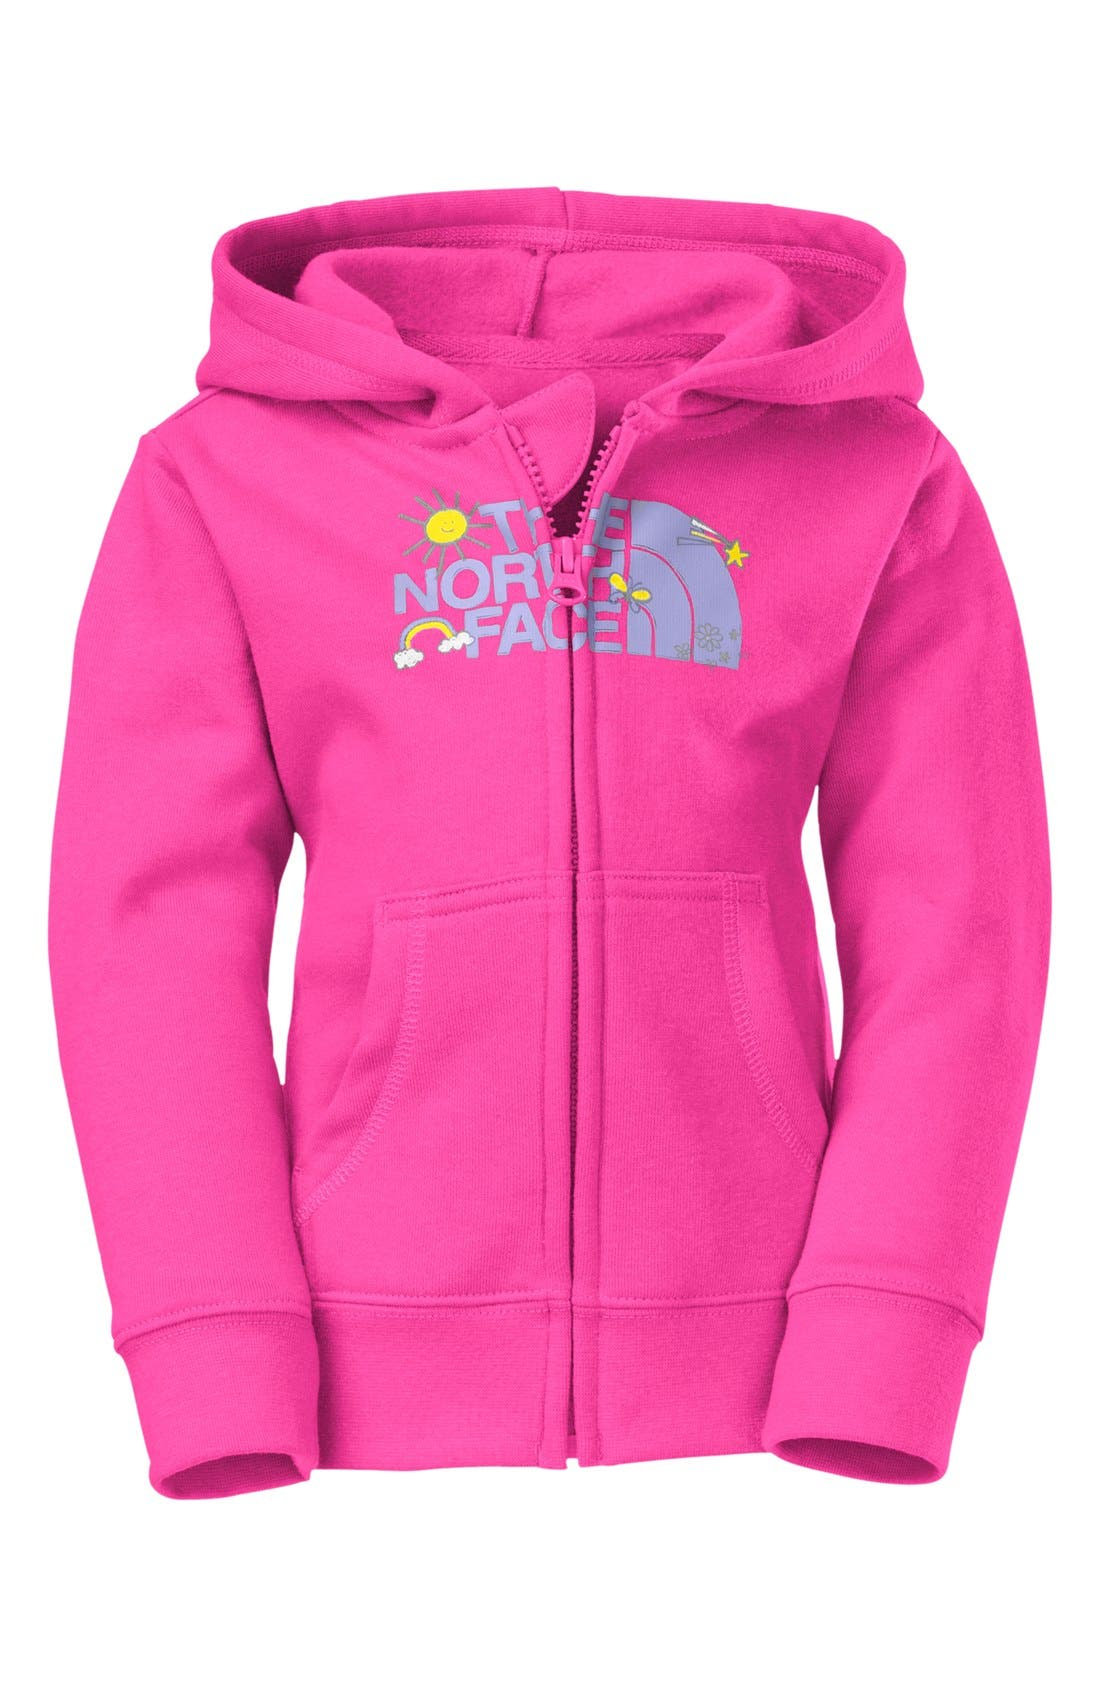 Main Image - The North Face Full Zip Hoodie (Toddler Girls)